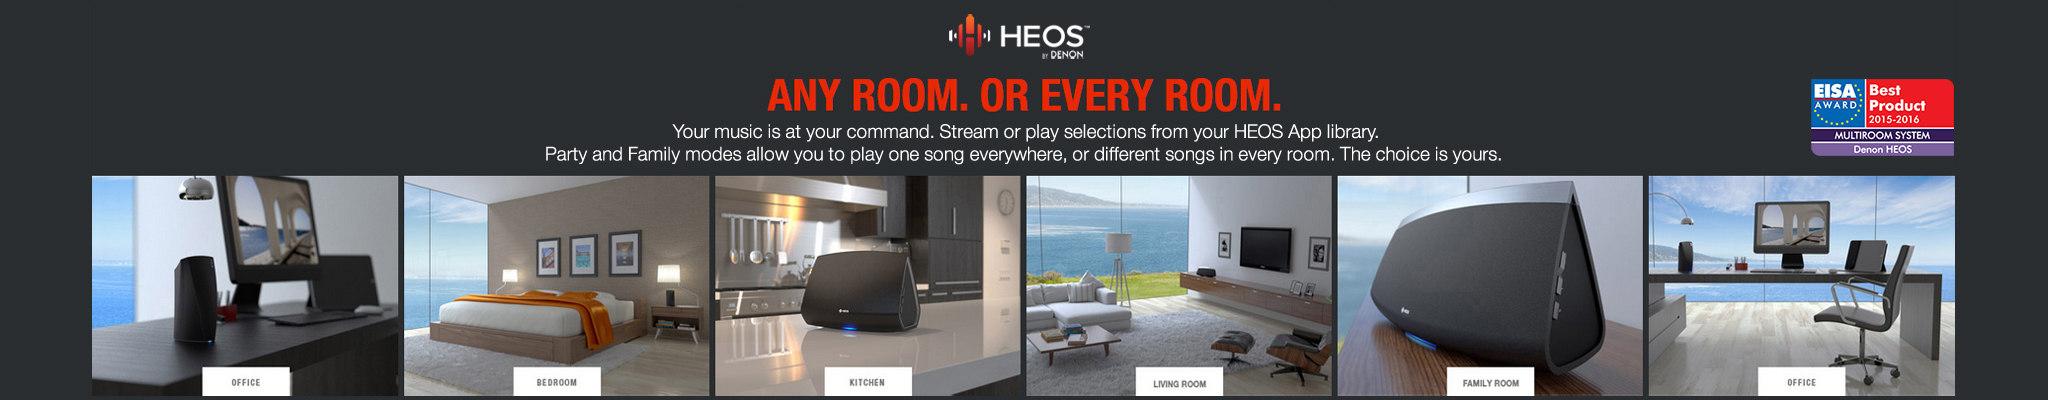 Any Room. Or Every Room | HEOS by Denon | Wireless Multi-Room Speaker System EISA